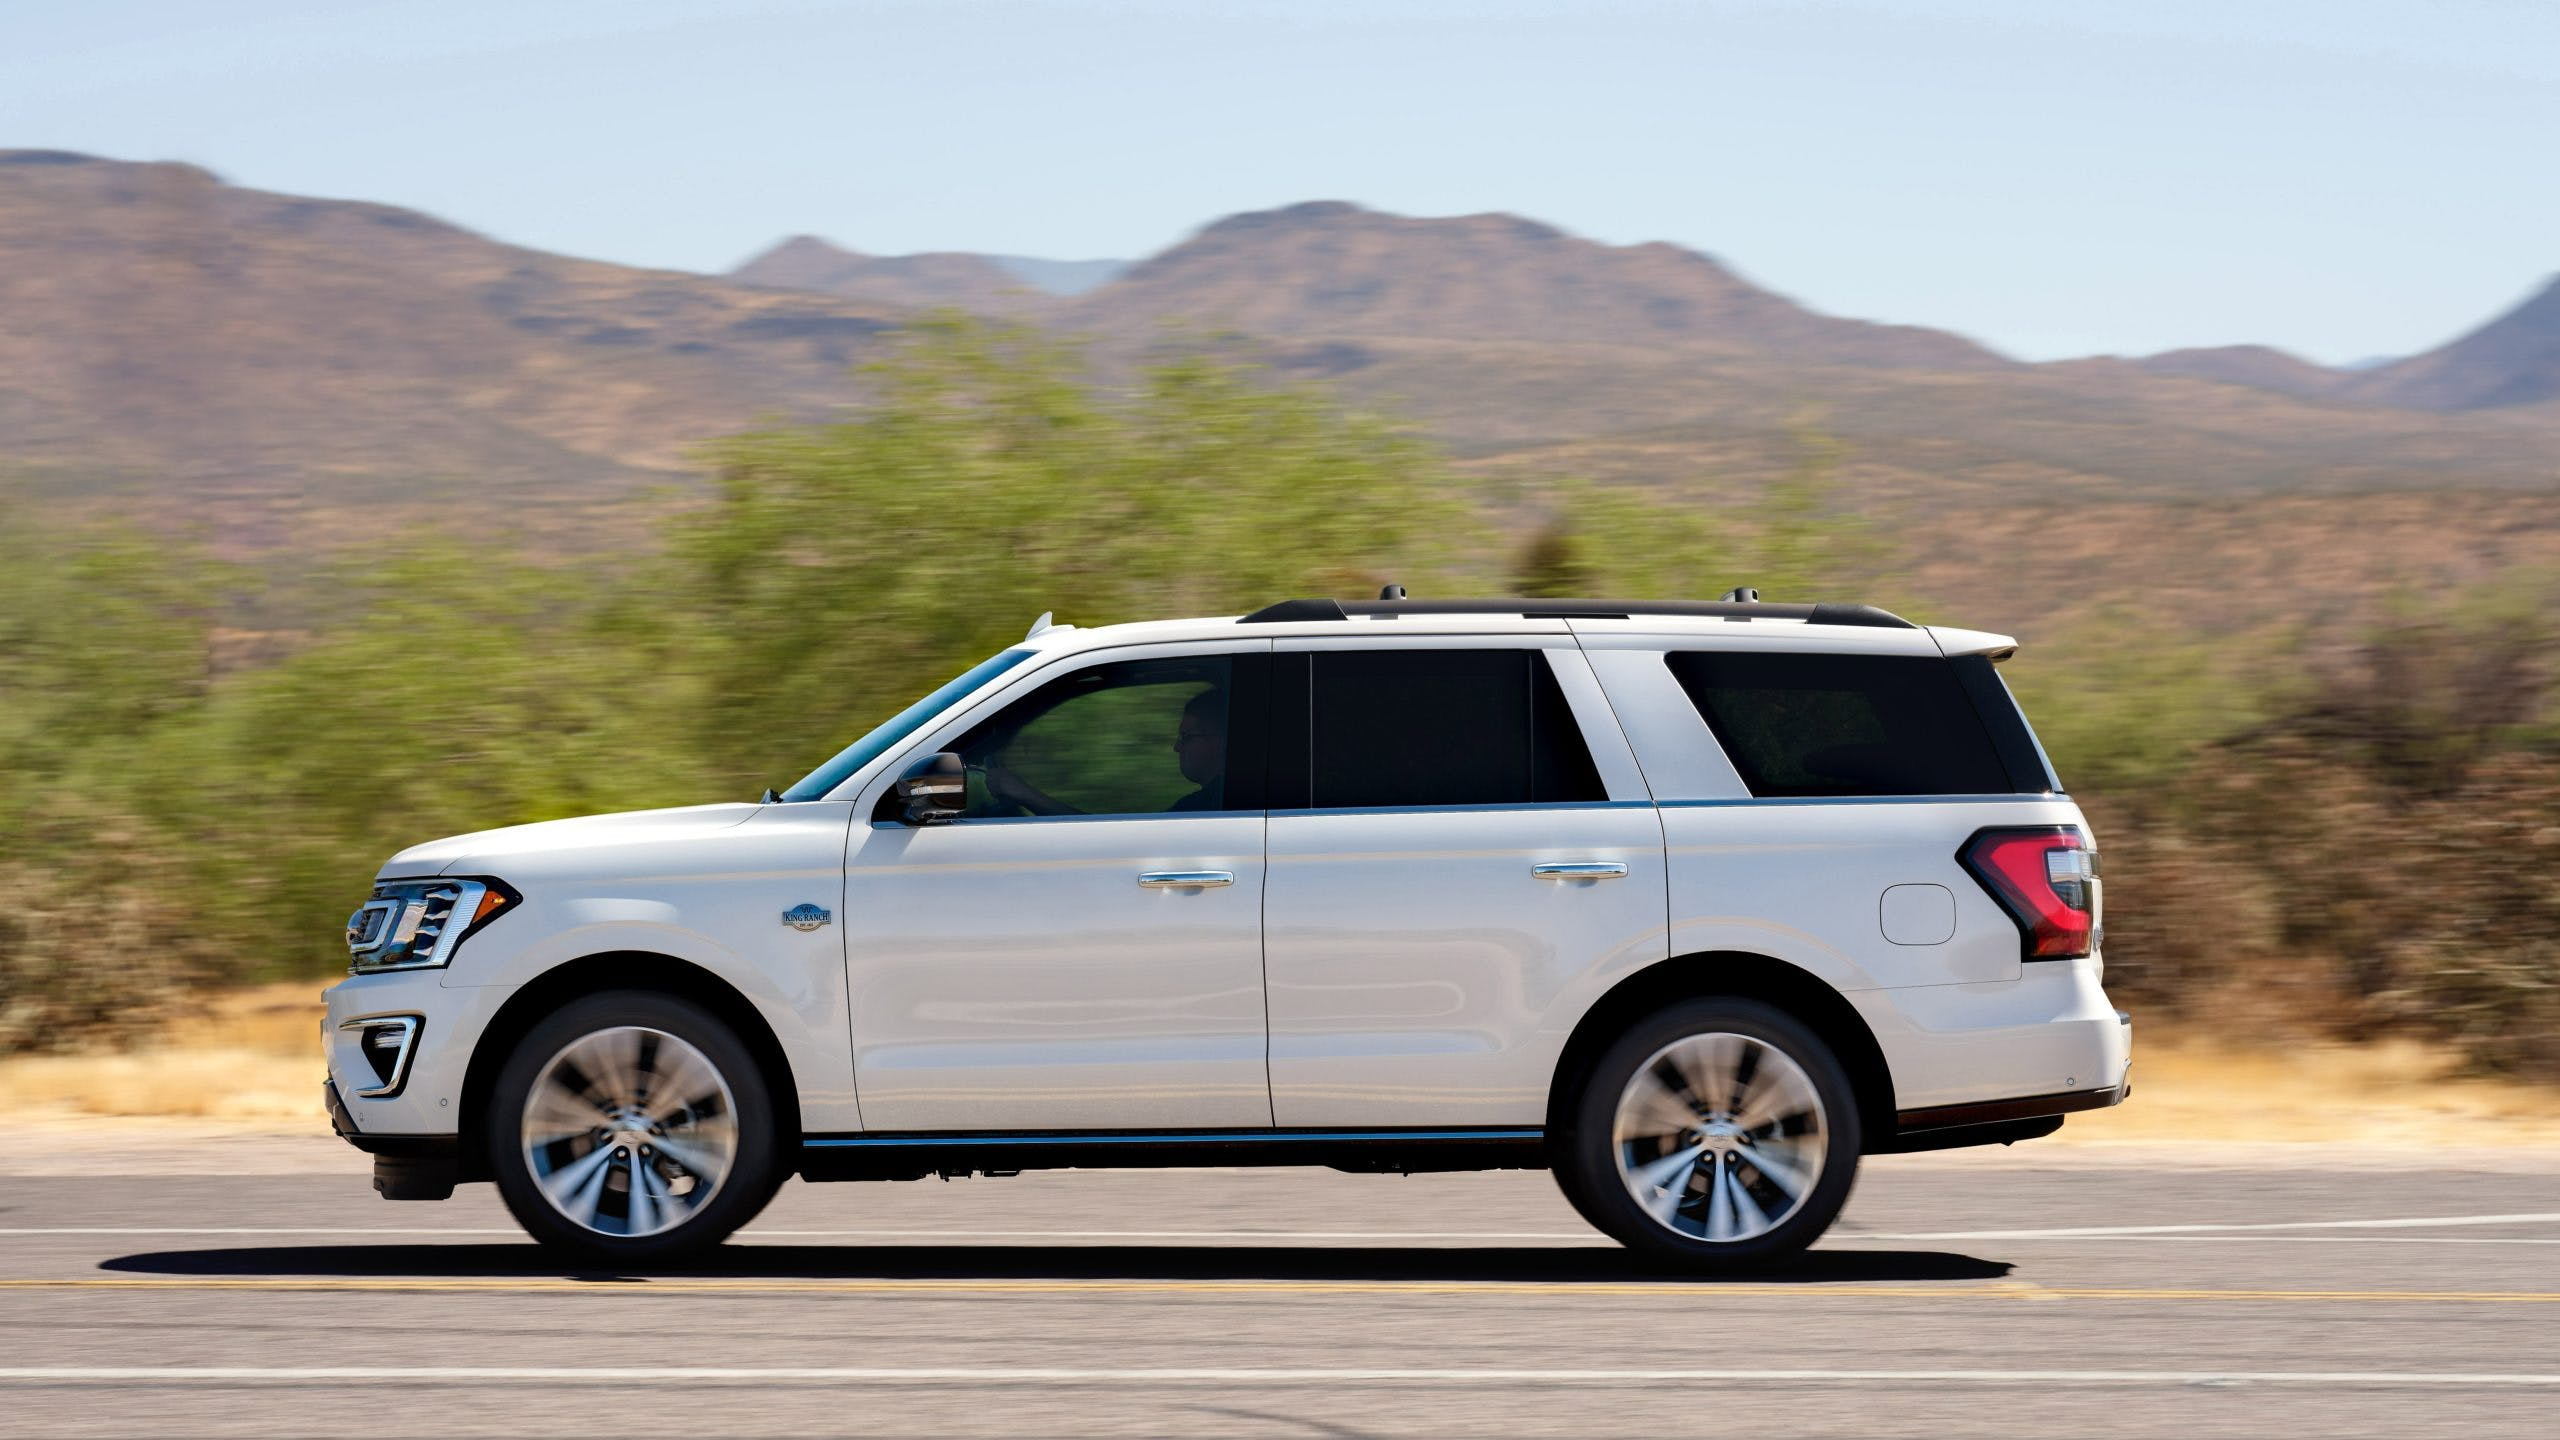 Tested: 2020 Ford Expedition Is Big, Powerful, and Pricey